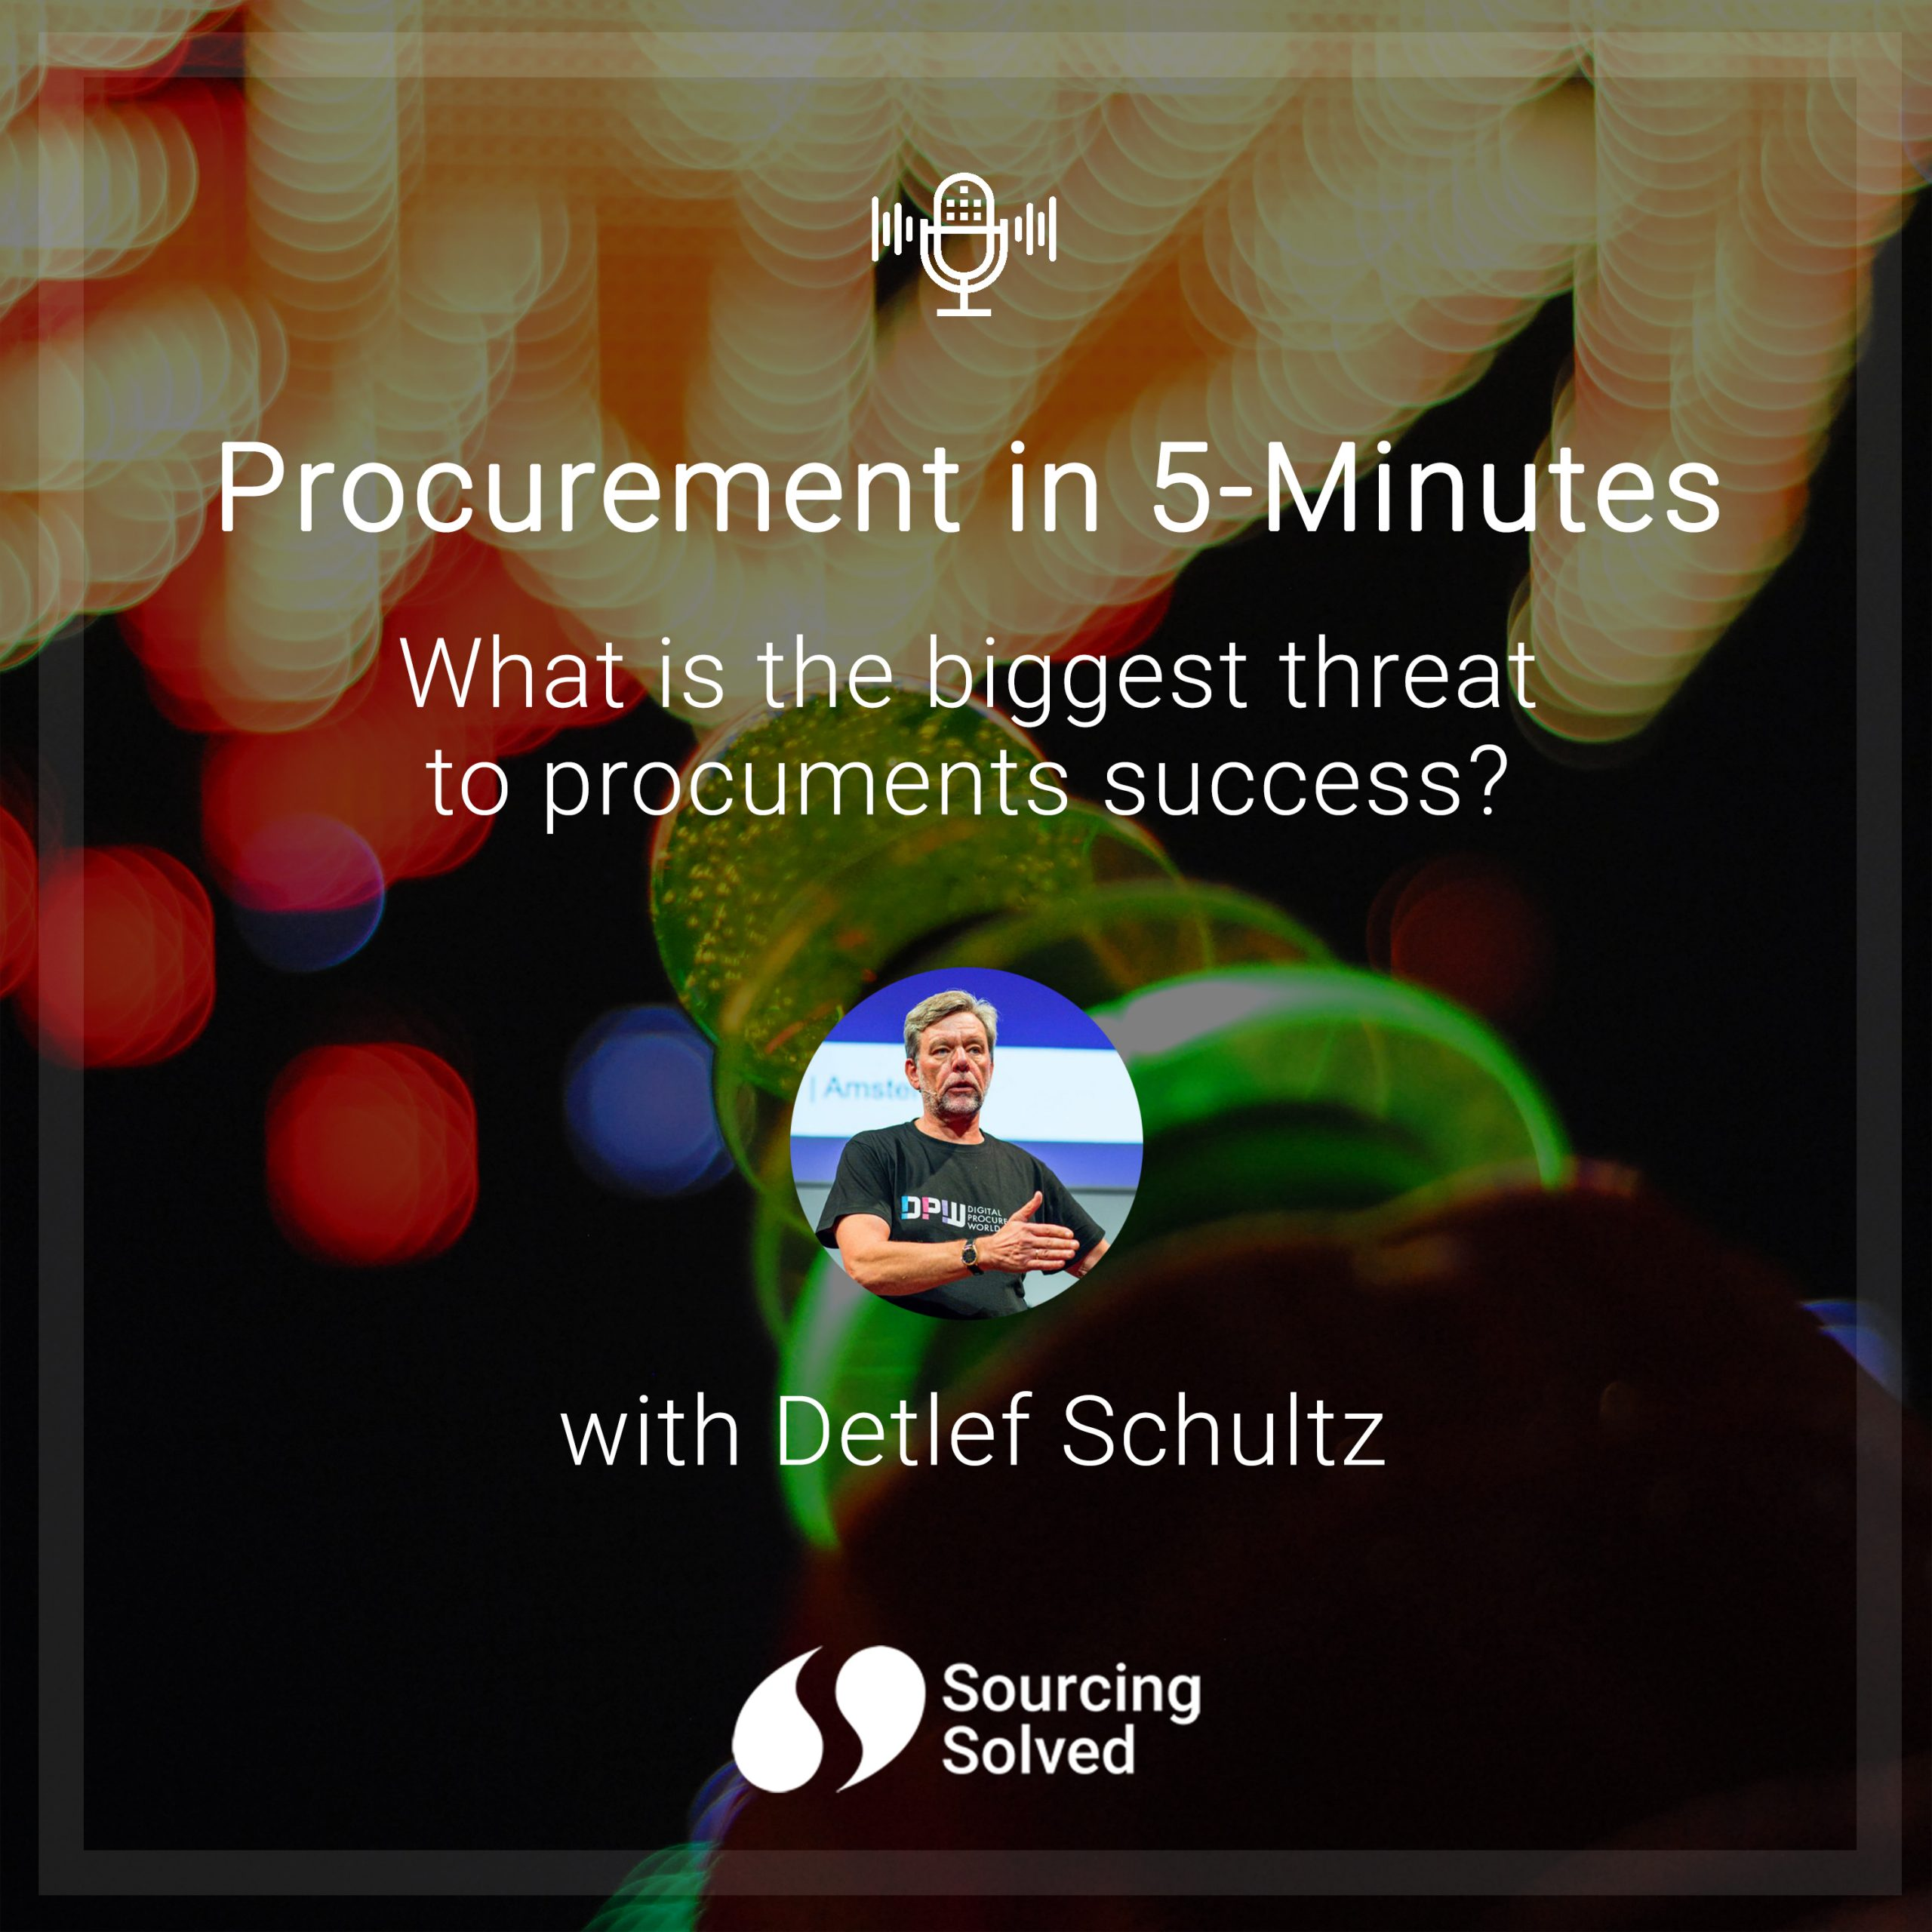 Procurement in 5-Minutes: What is the biggest threat to procurements success?